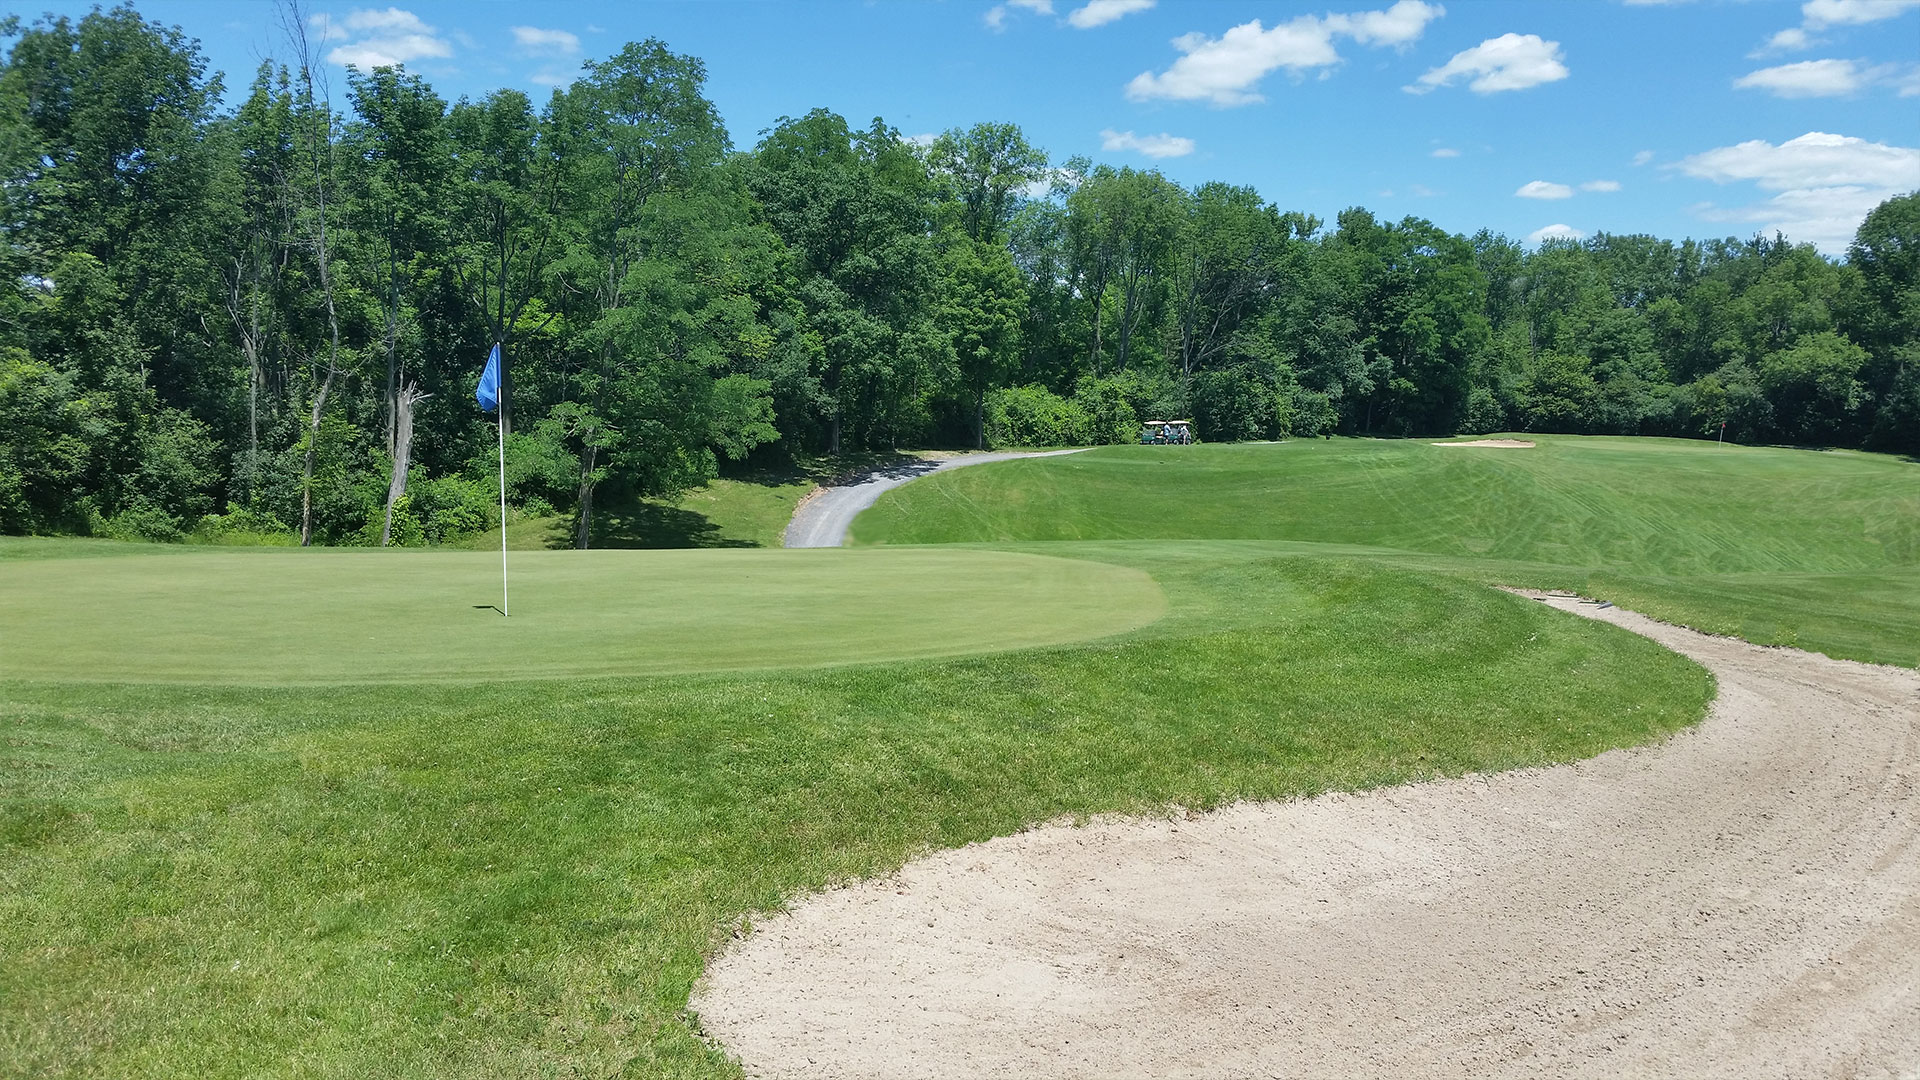 Gallery of 18 holes at SFCC